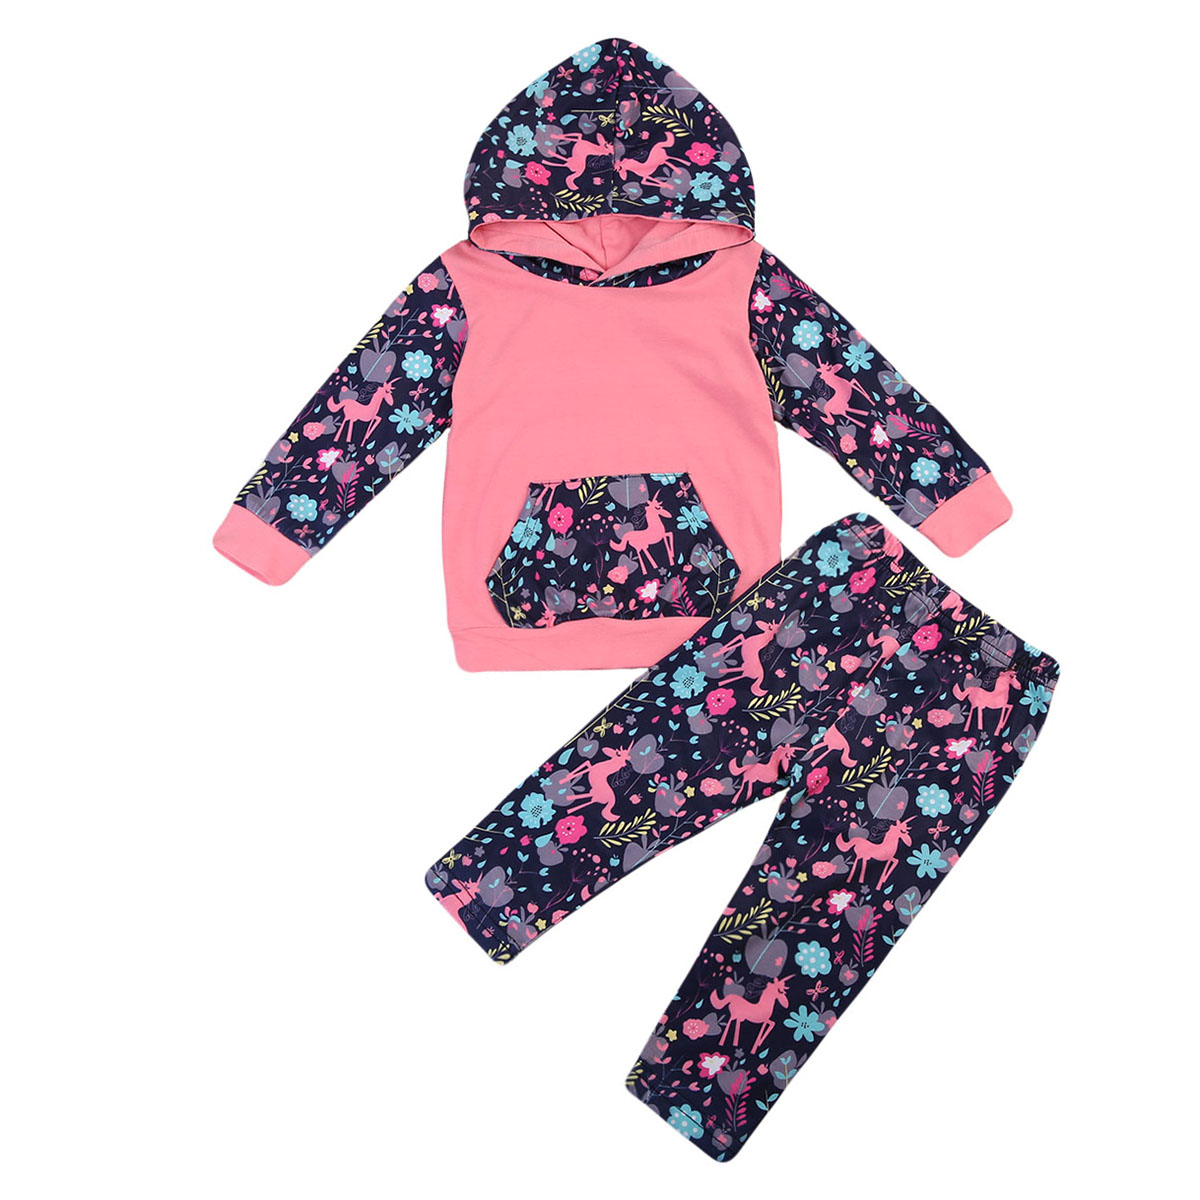 Baby Girl Long Sleeve T-shirt Tops Hooded Flower Pants Casual Outfits Toddler Clothing Floral Baby Girls Clothes Sets 2pcs boy kids long sleeve tops pants nightwear sleepwear pajama pyjamas outfits